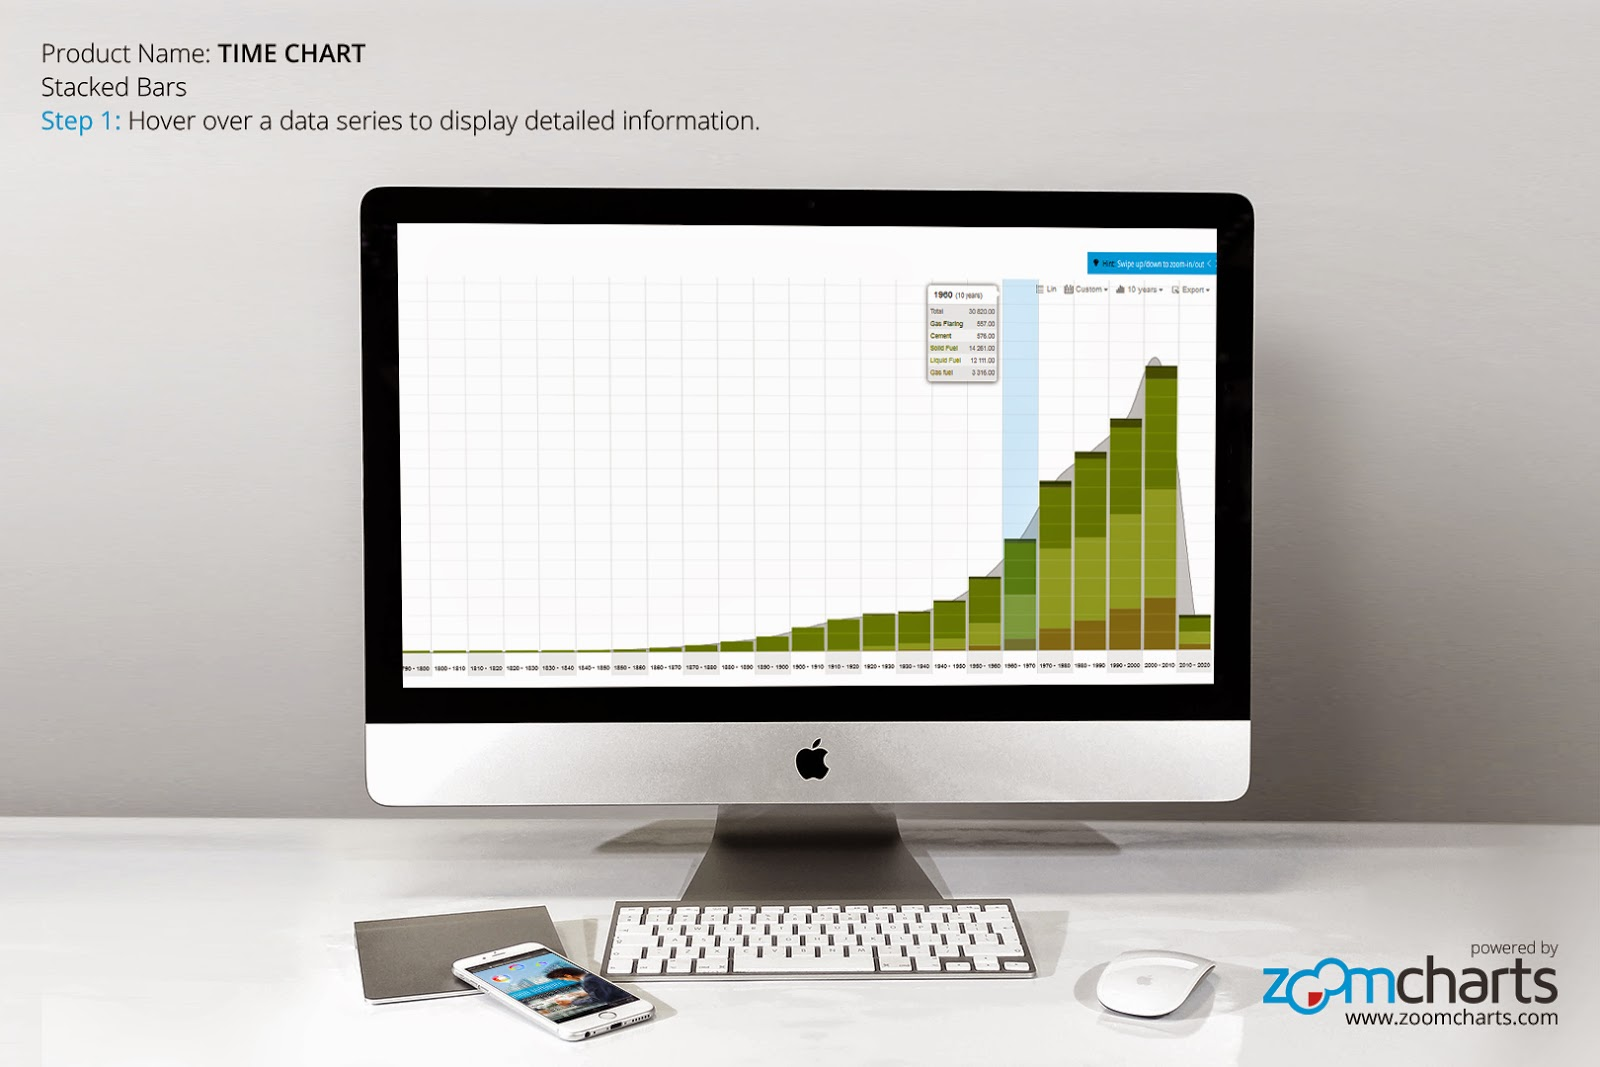 step 1 hover over a data series to display detailed information